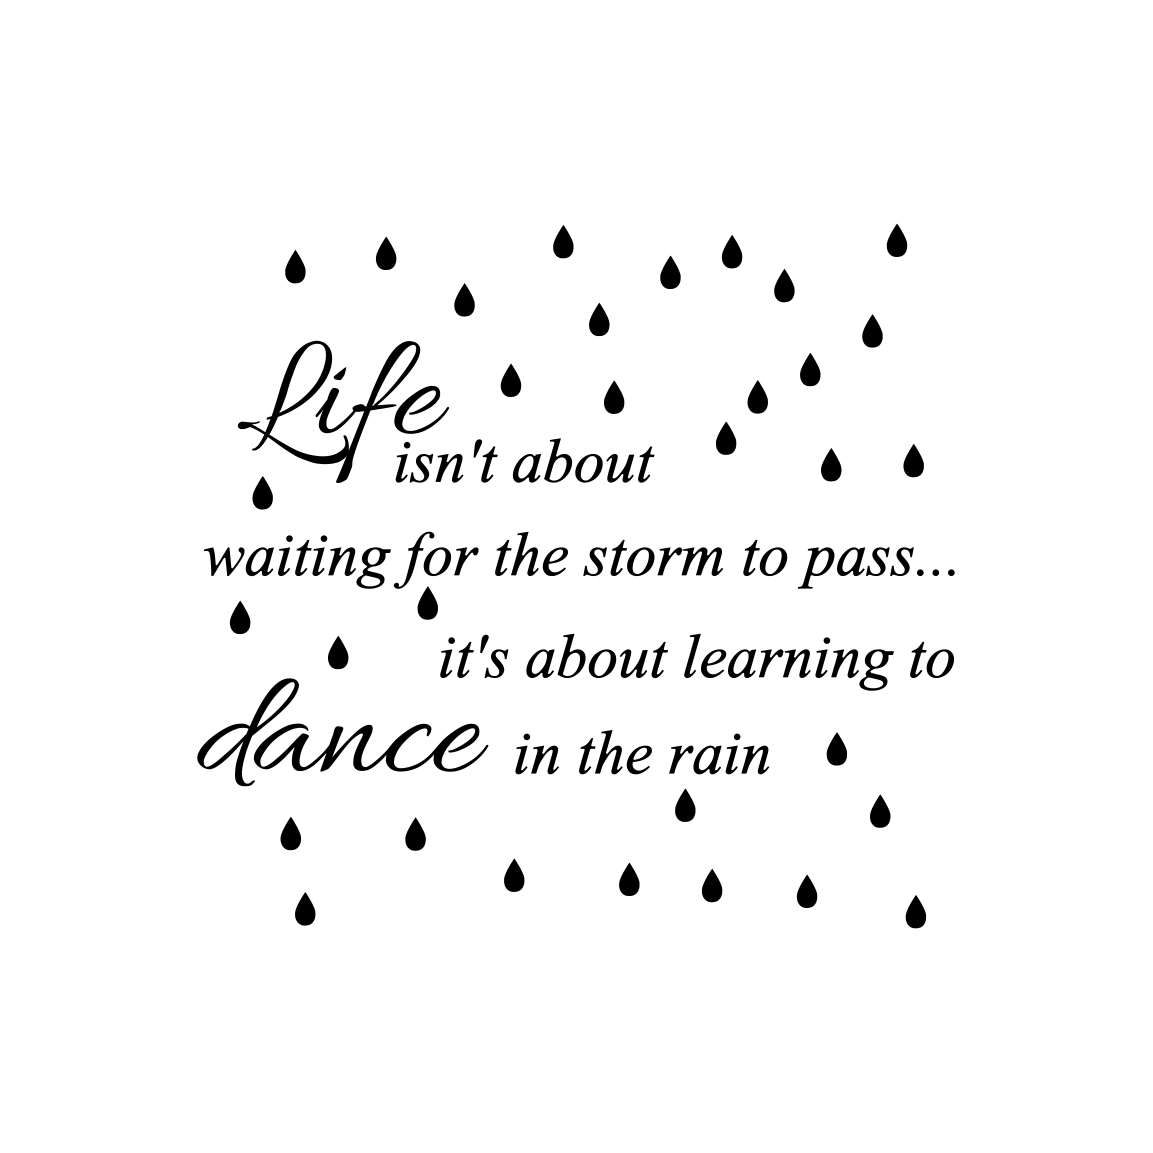 Dance in the Rain Graphic Crafts By Ellesbellescraft